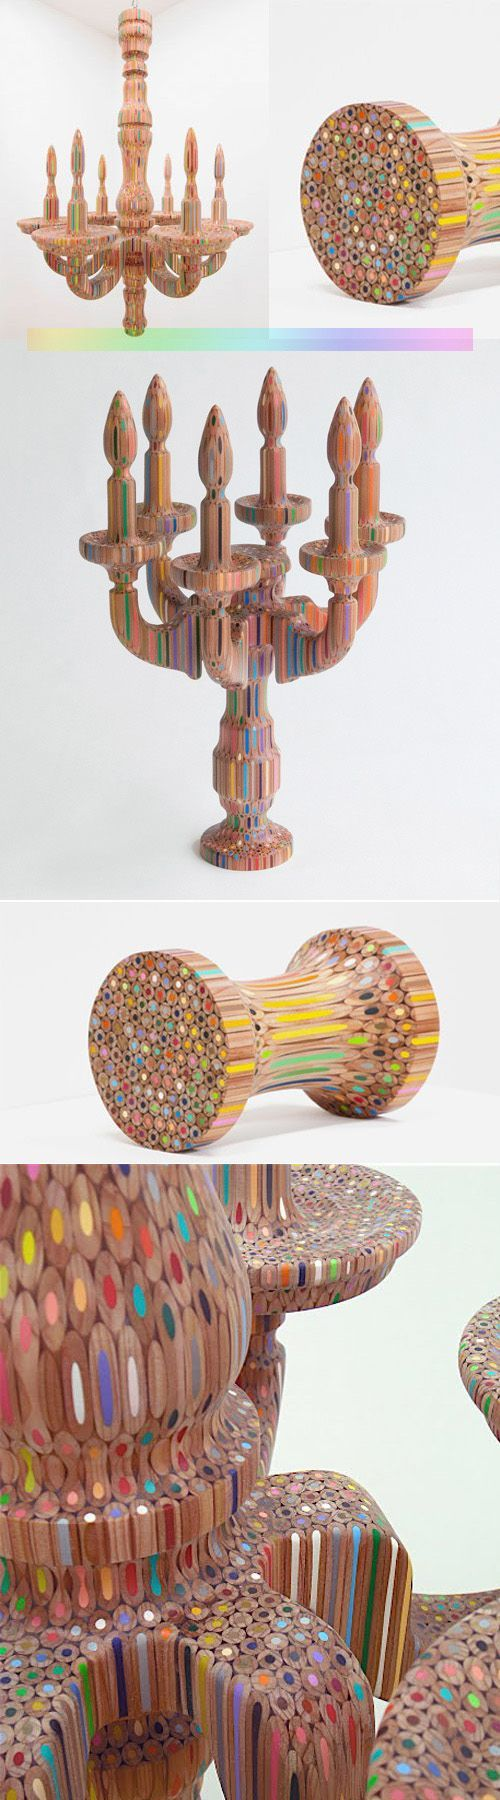 Colored Pencil Sculptures by Takafumi Yagi » Amazing!!